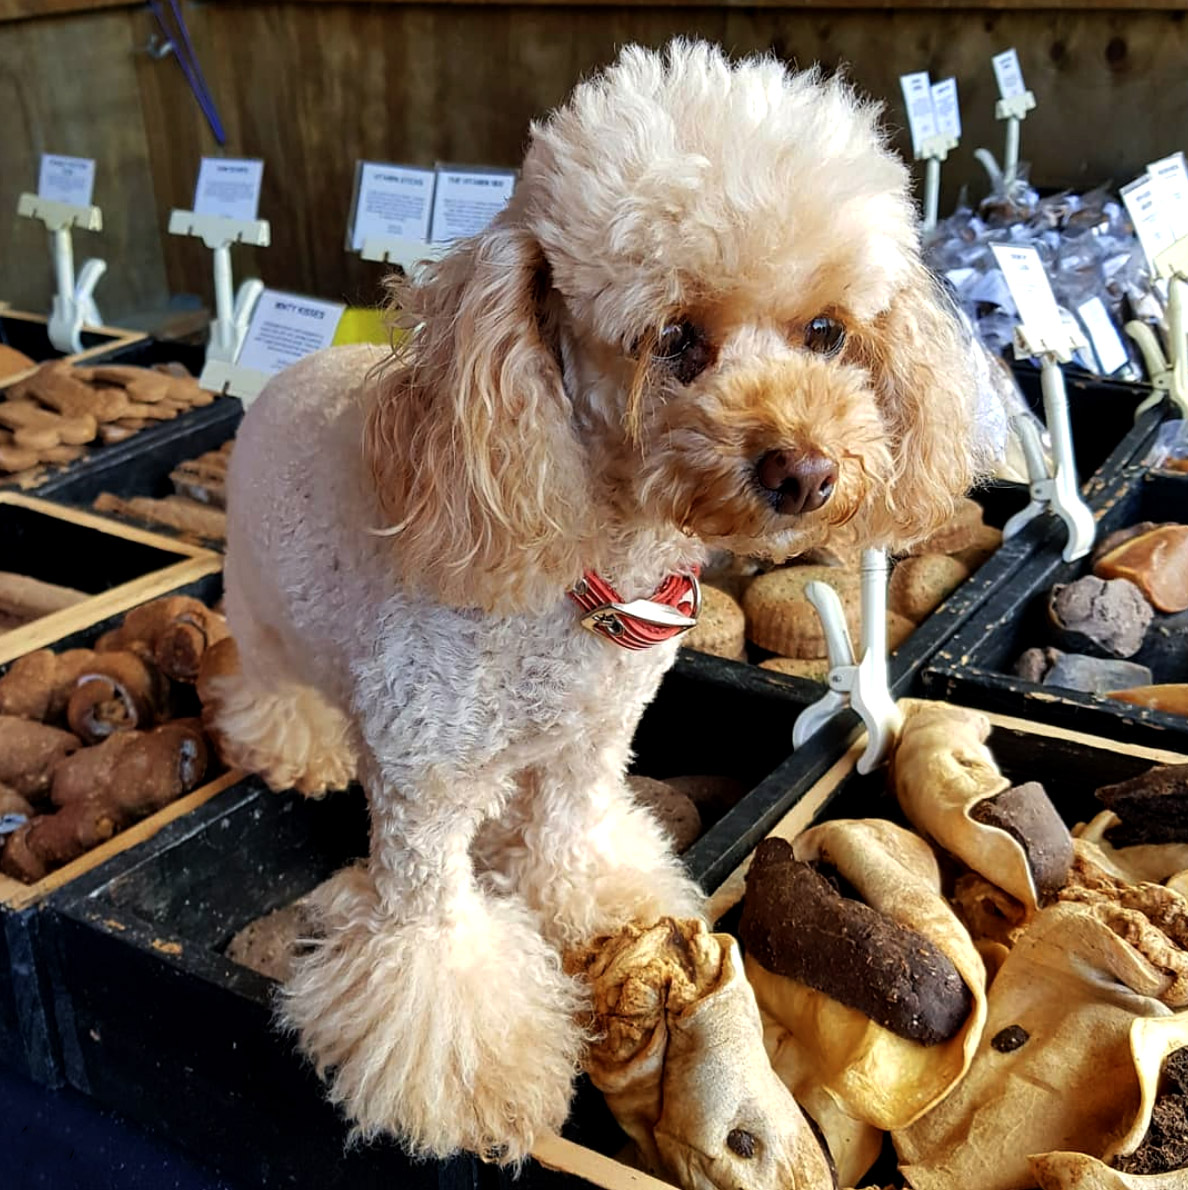 poodle at dog treat stand at market